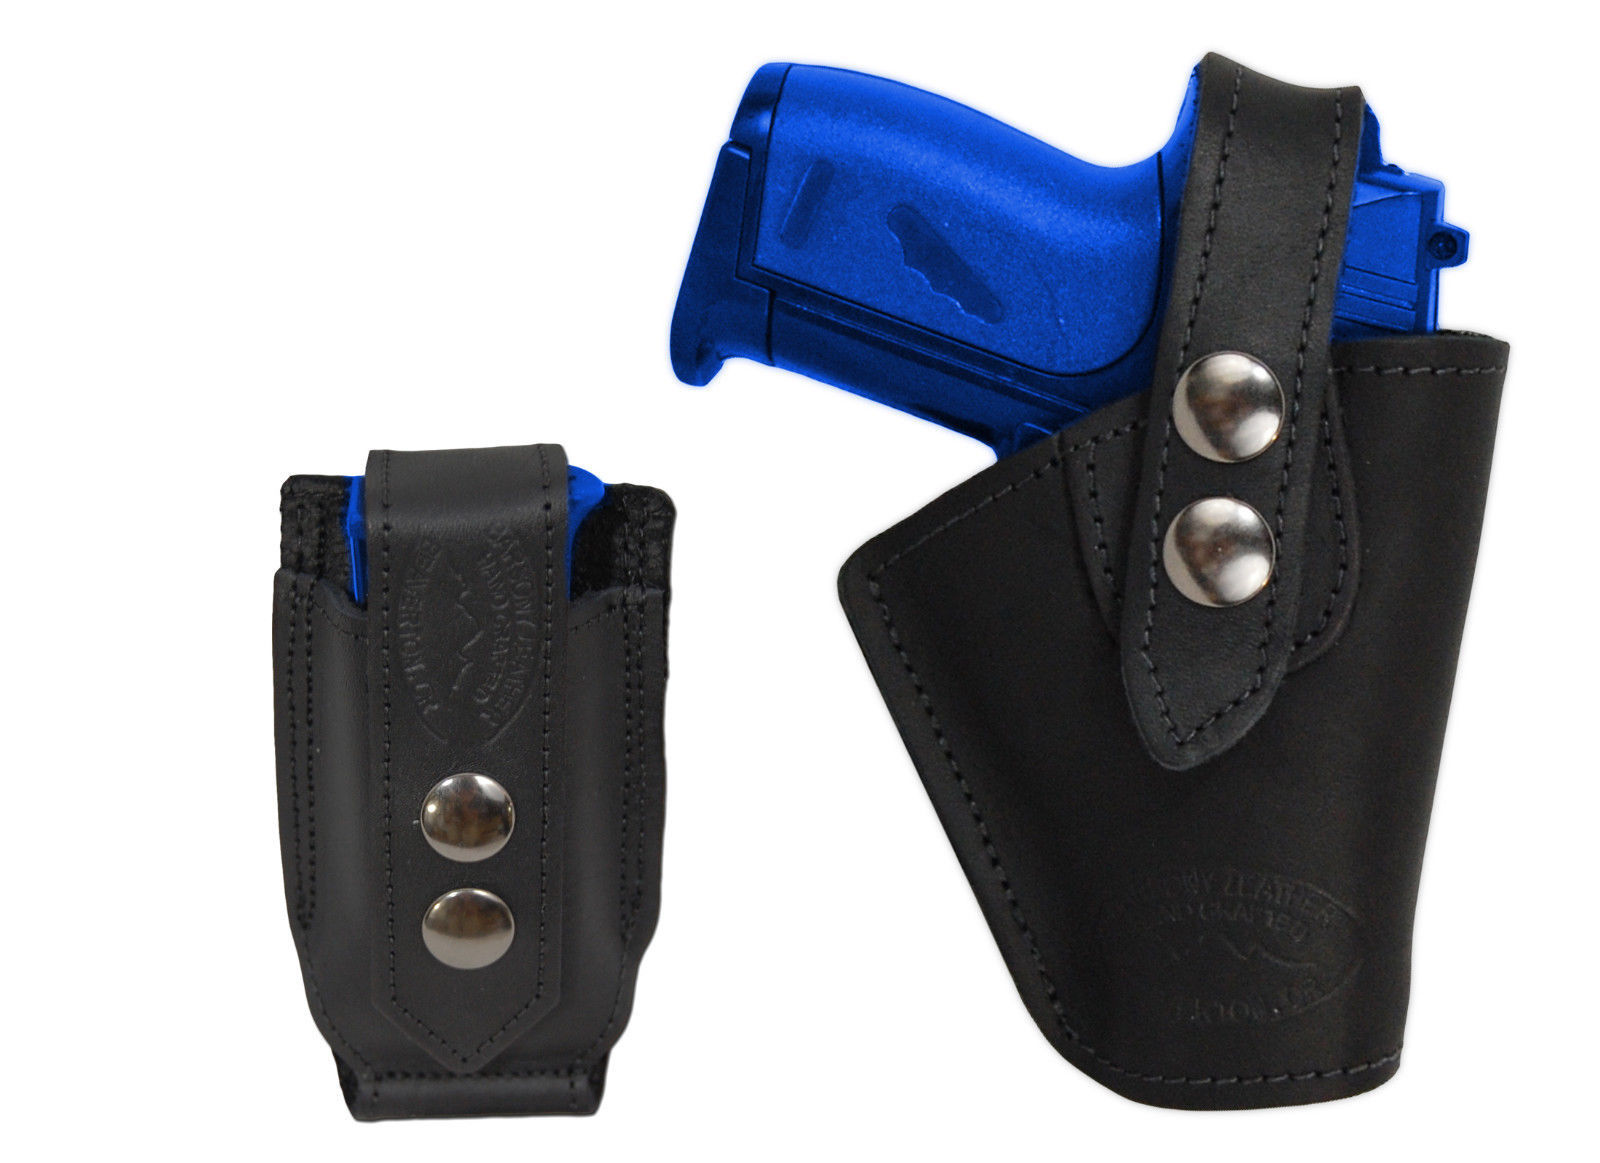 Primary image for Barsony OWB Black Leather Belt Holster w/Mag Pouch Beretta Taurus Mini 22 25 380